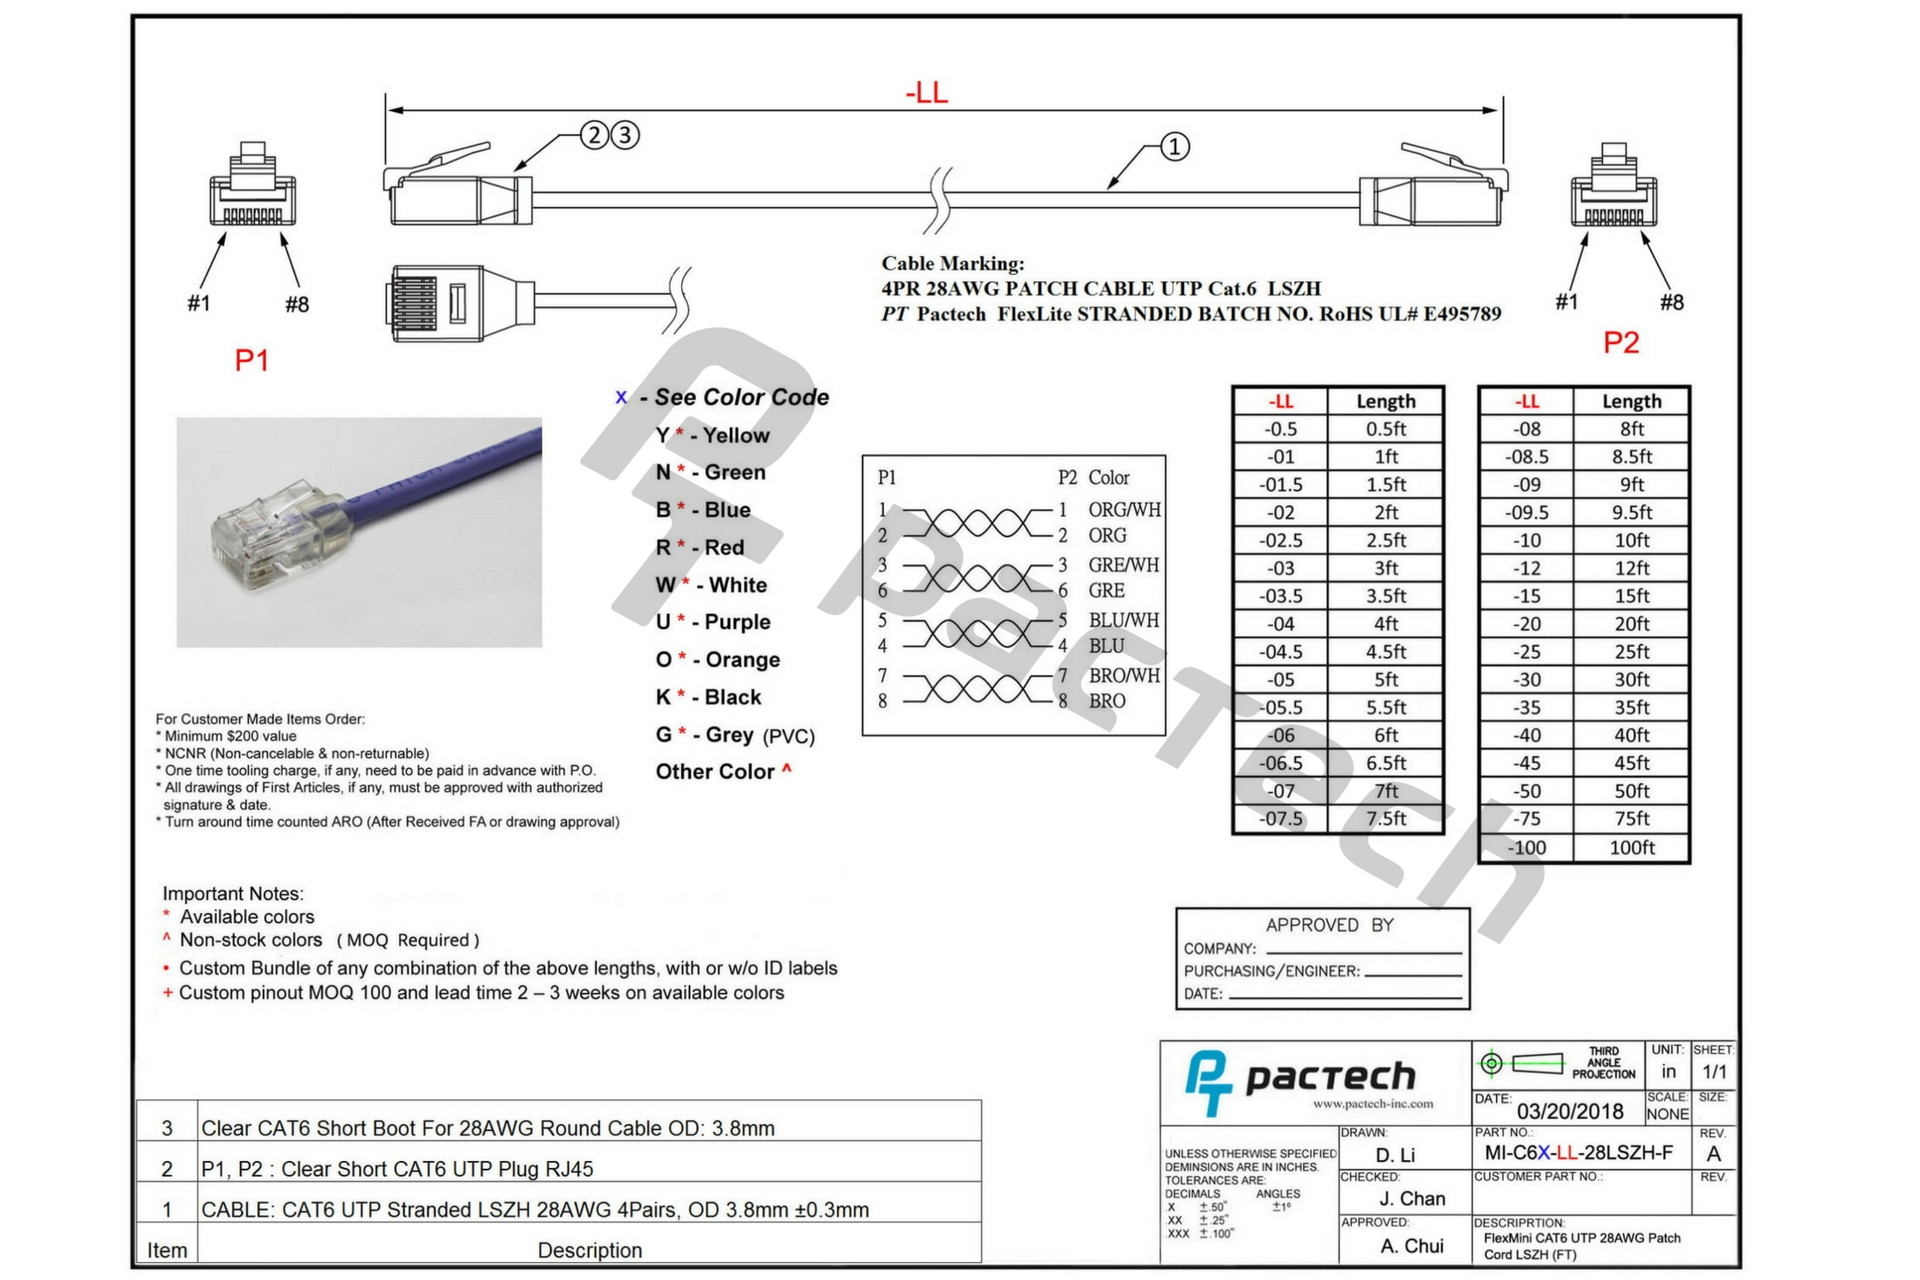 wiring diagram for cat5 cable collection wiring collection With cat 5 cable wiring